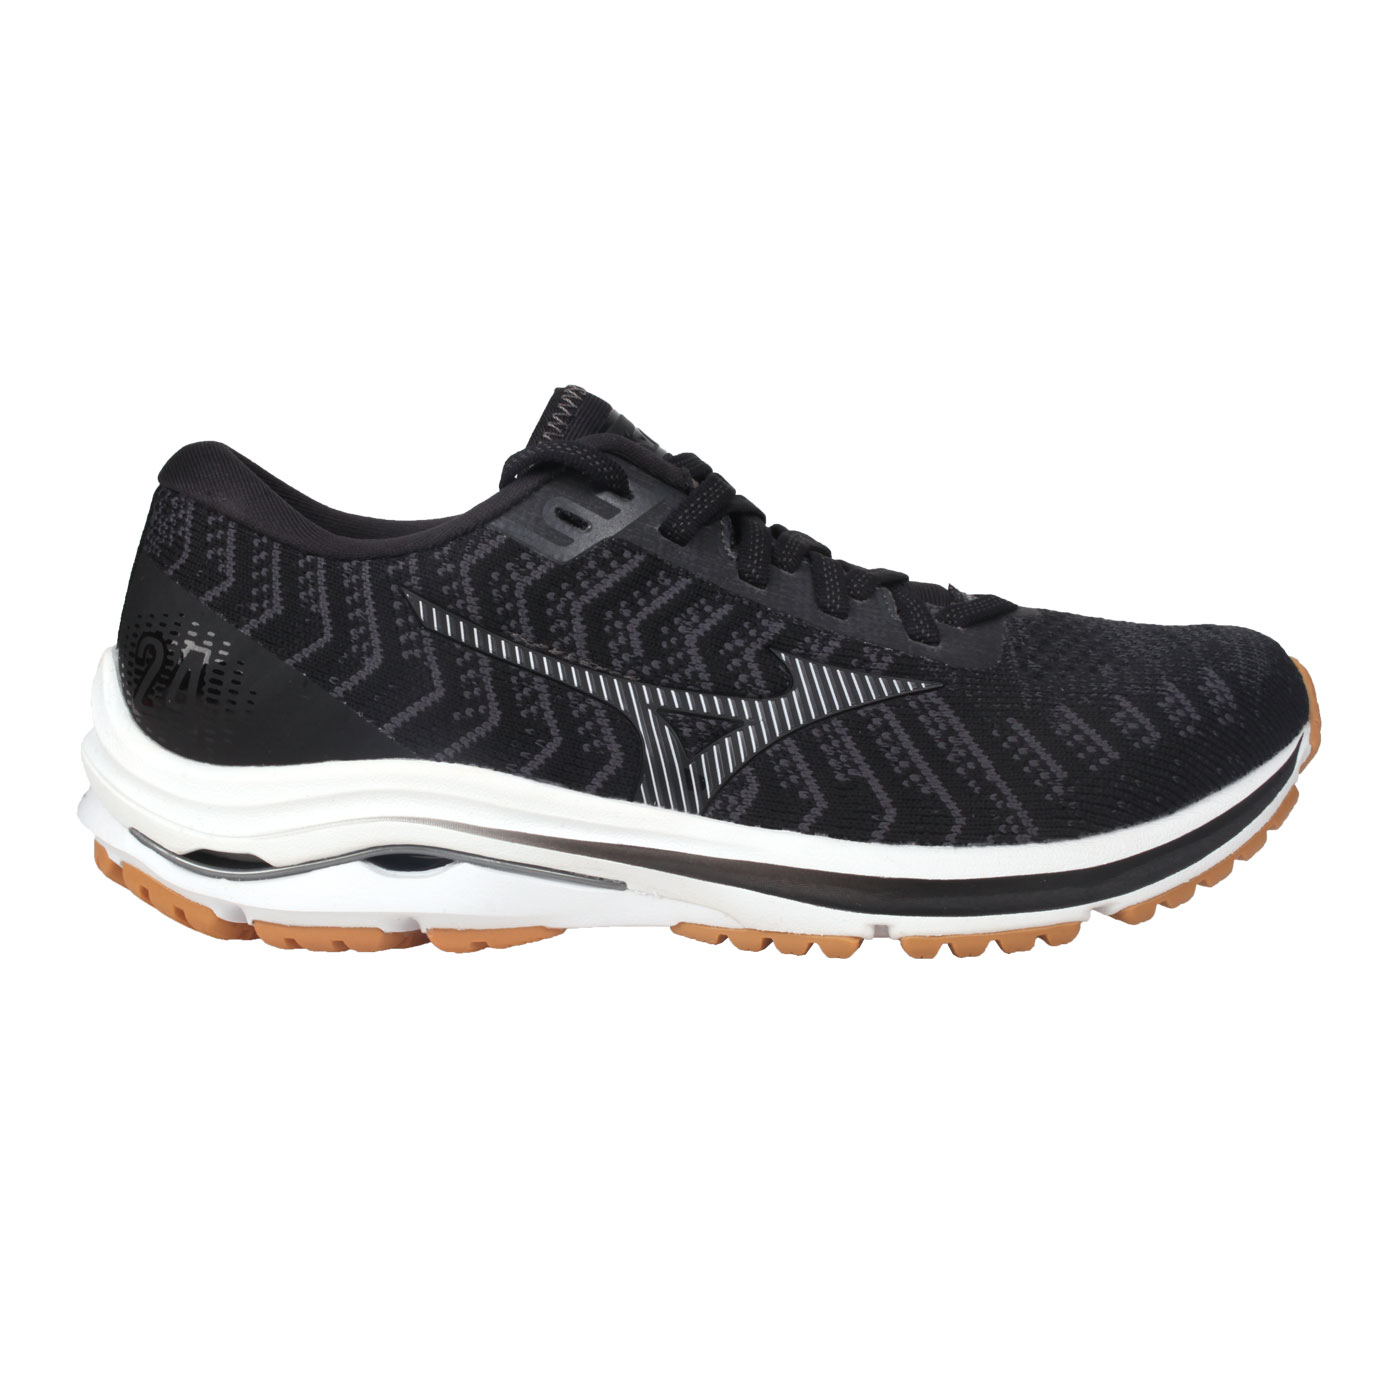 MIZUNO 女款慢跑鞋-3E  @WAVE? RIDER 24 WAVEKNIT WIDE@J1GD207740